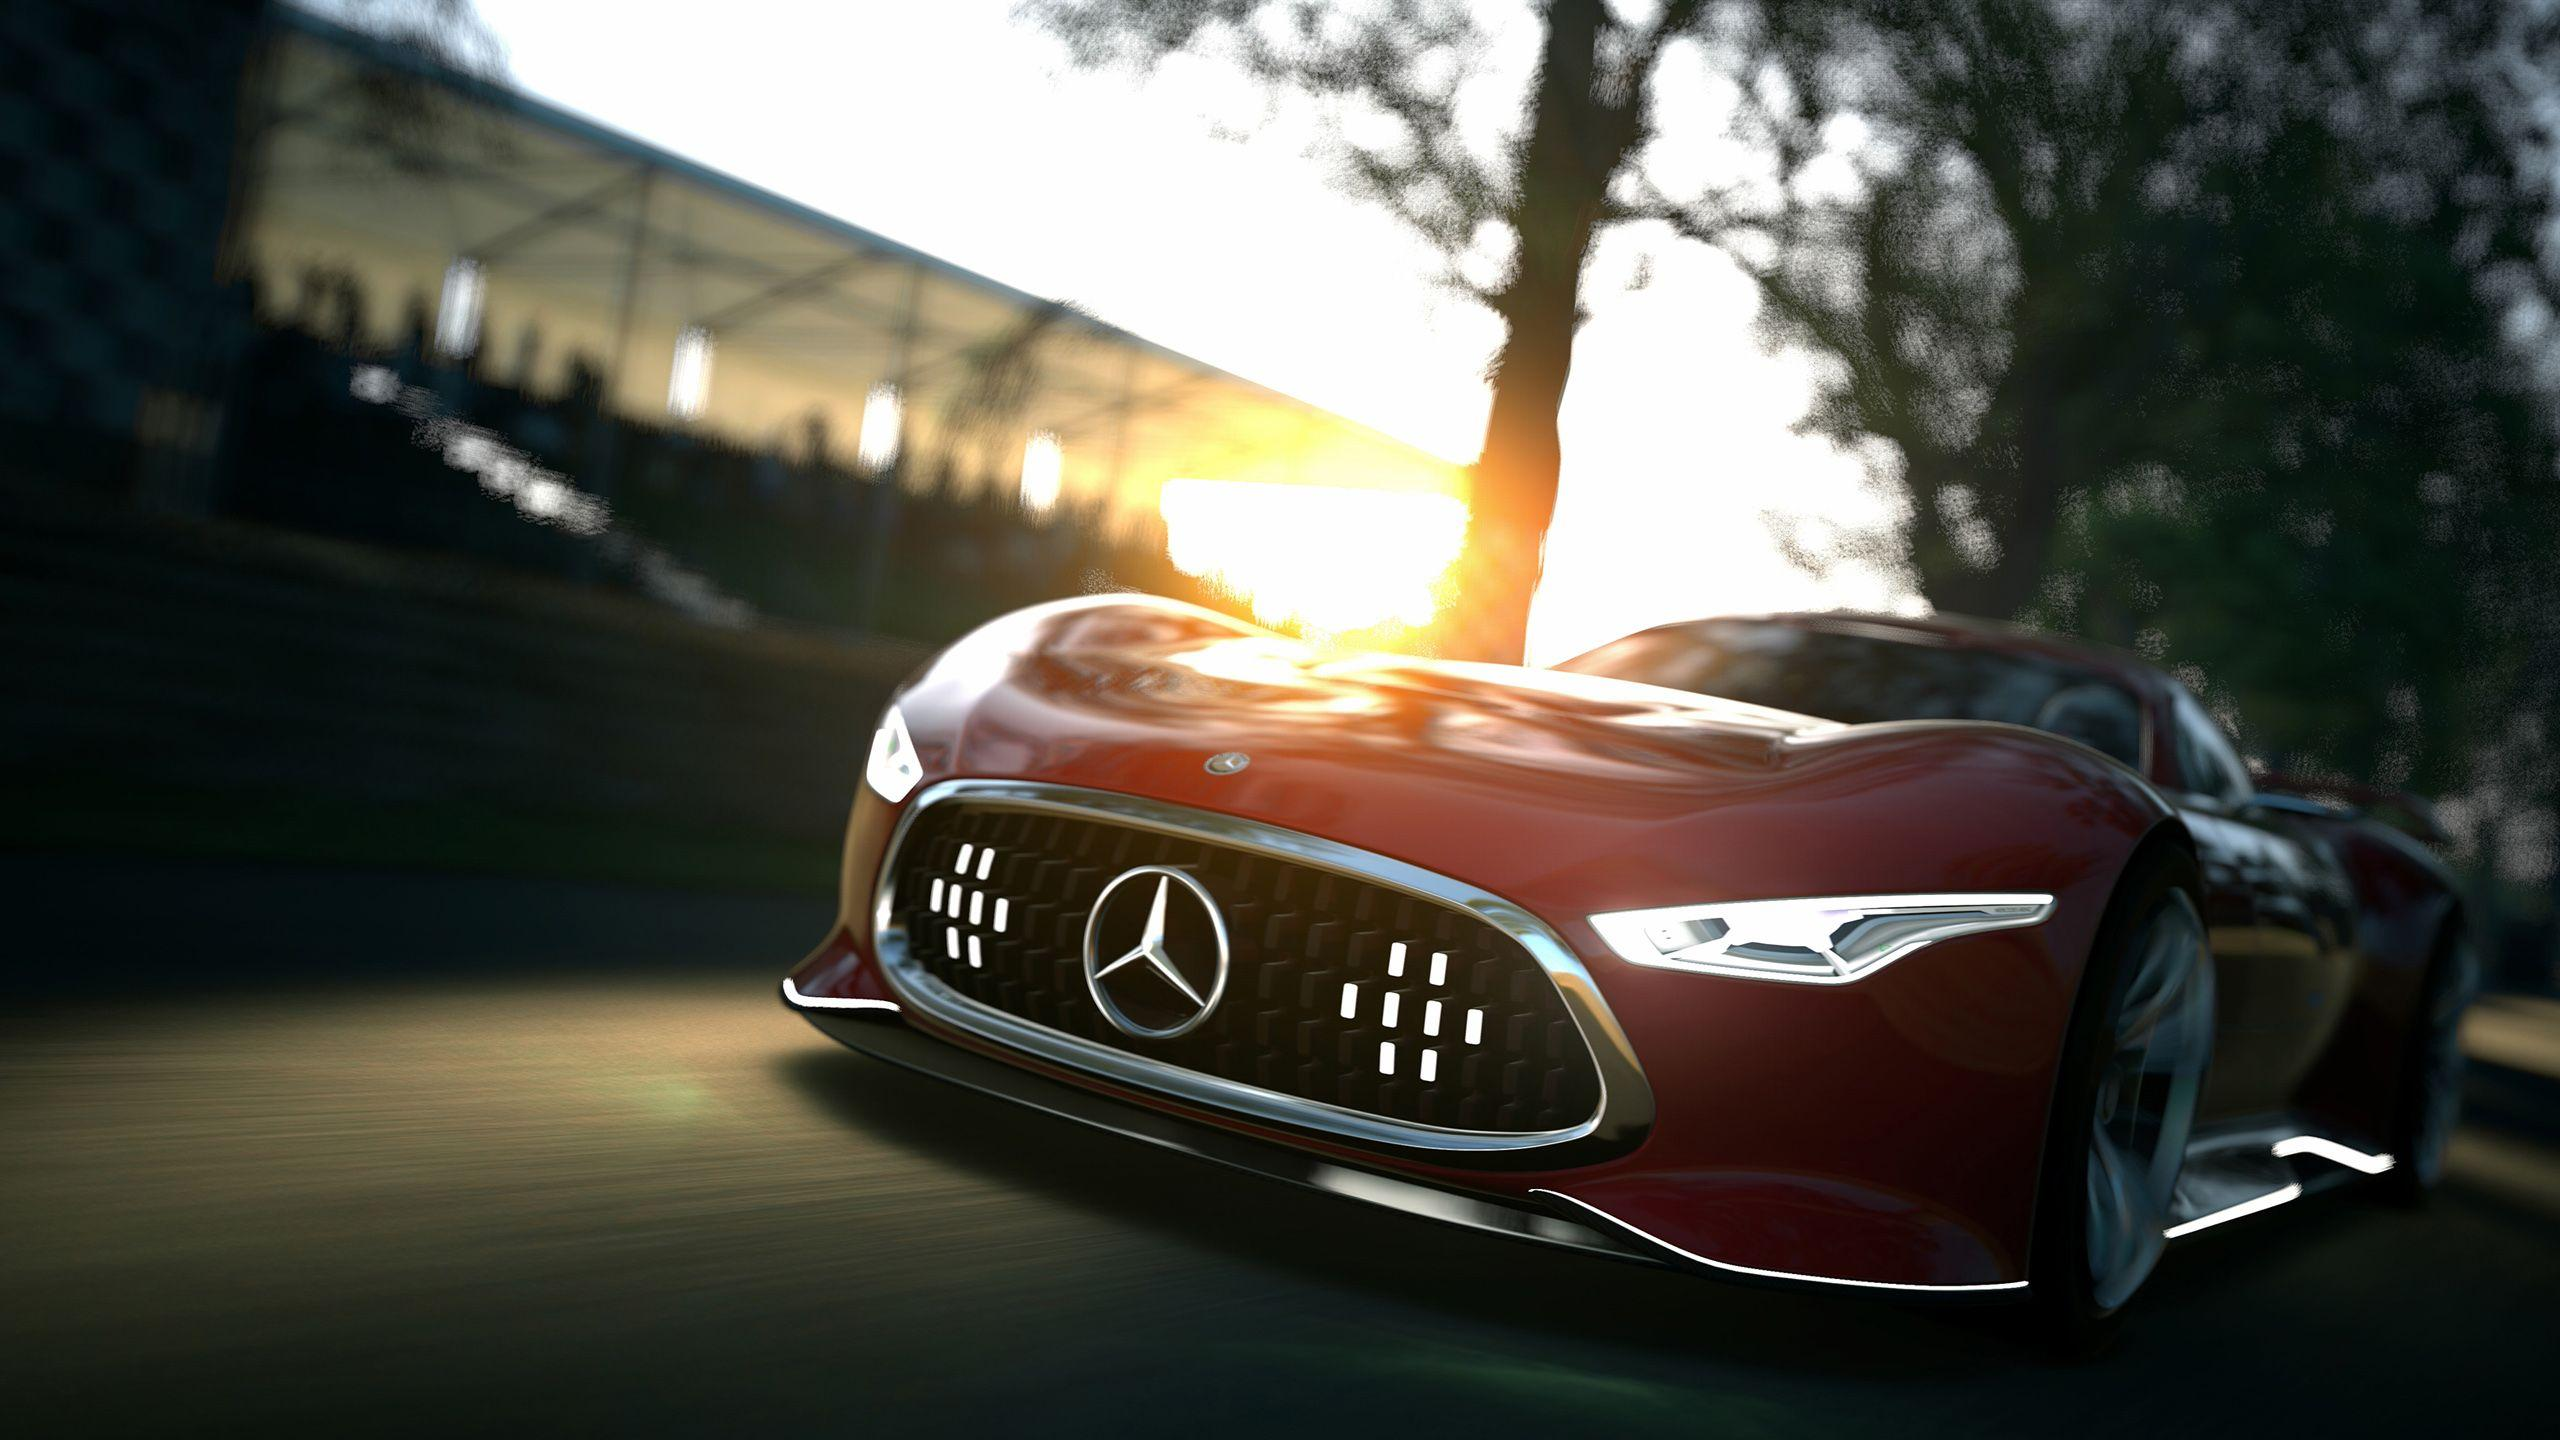 Mercedes Benz AMG Vision Gran Turismo Concept Wallpapers